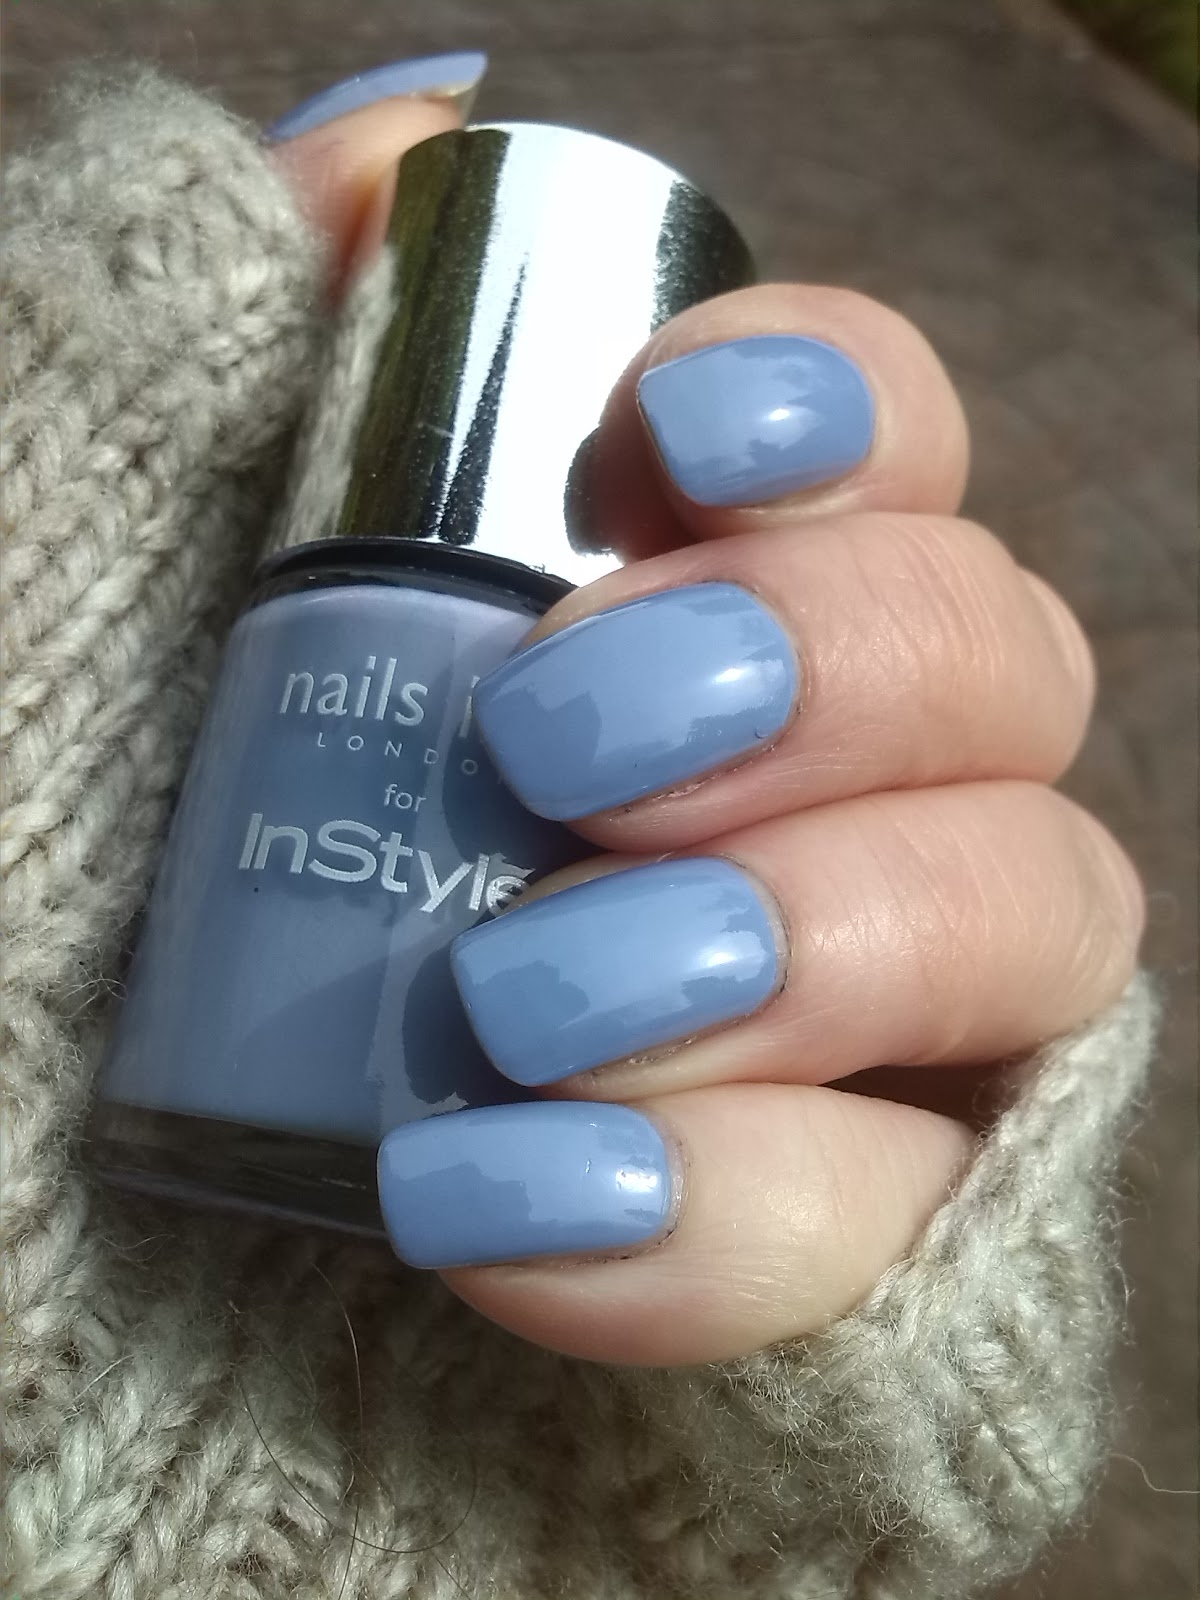 Nails Inc Instyle Bluebell